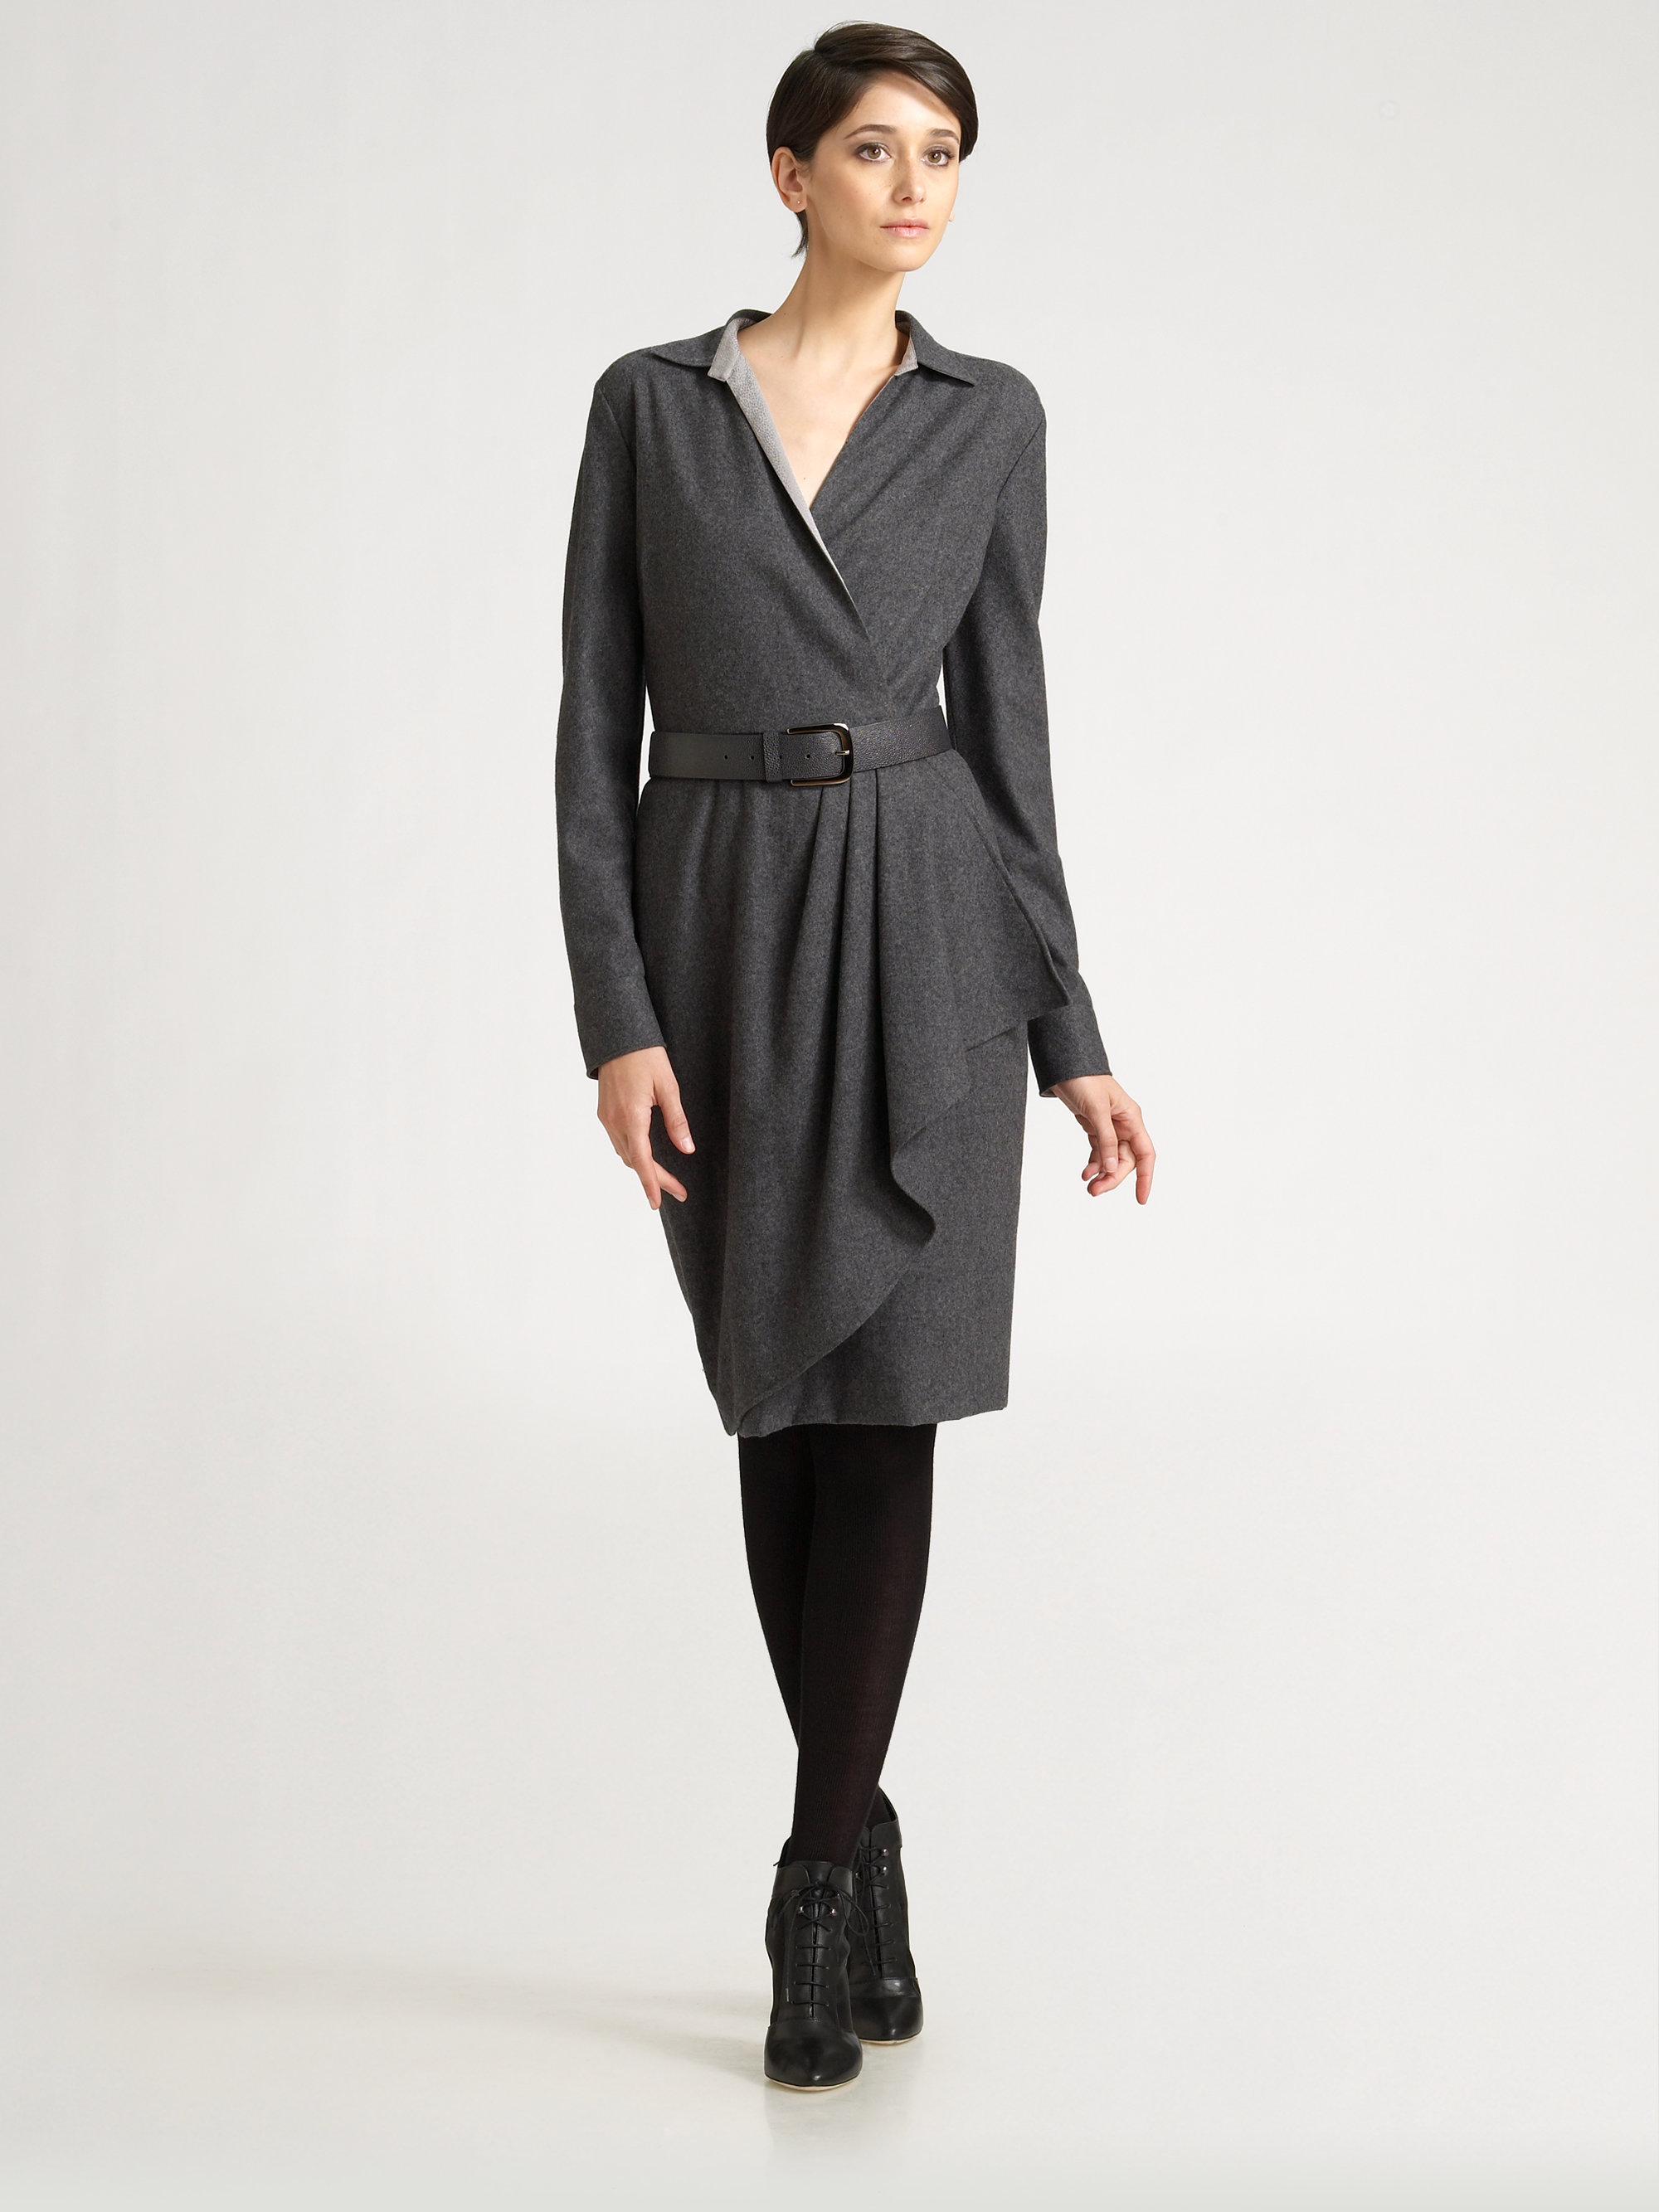 max mara agro belted wrap dress in gray medium grey lyst